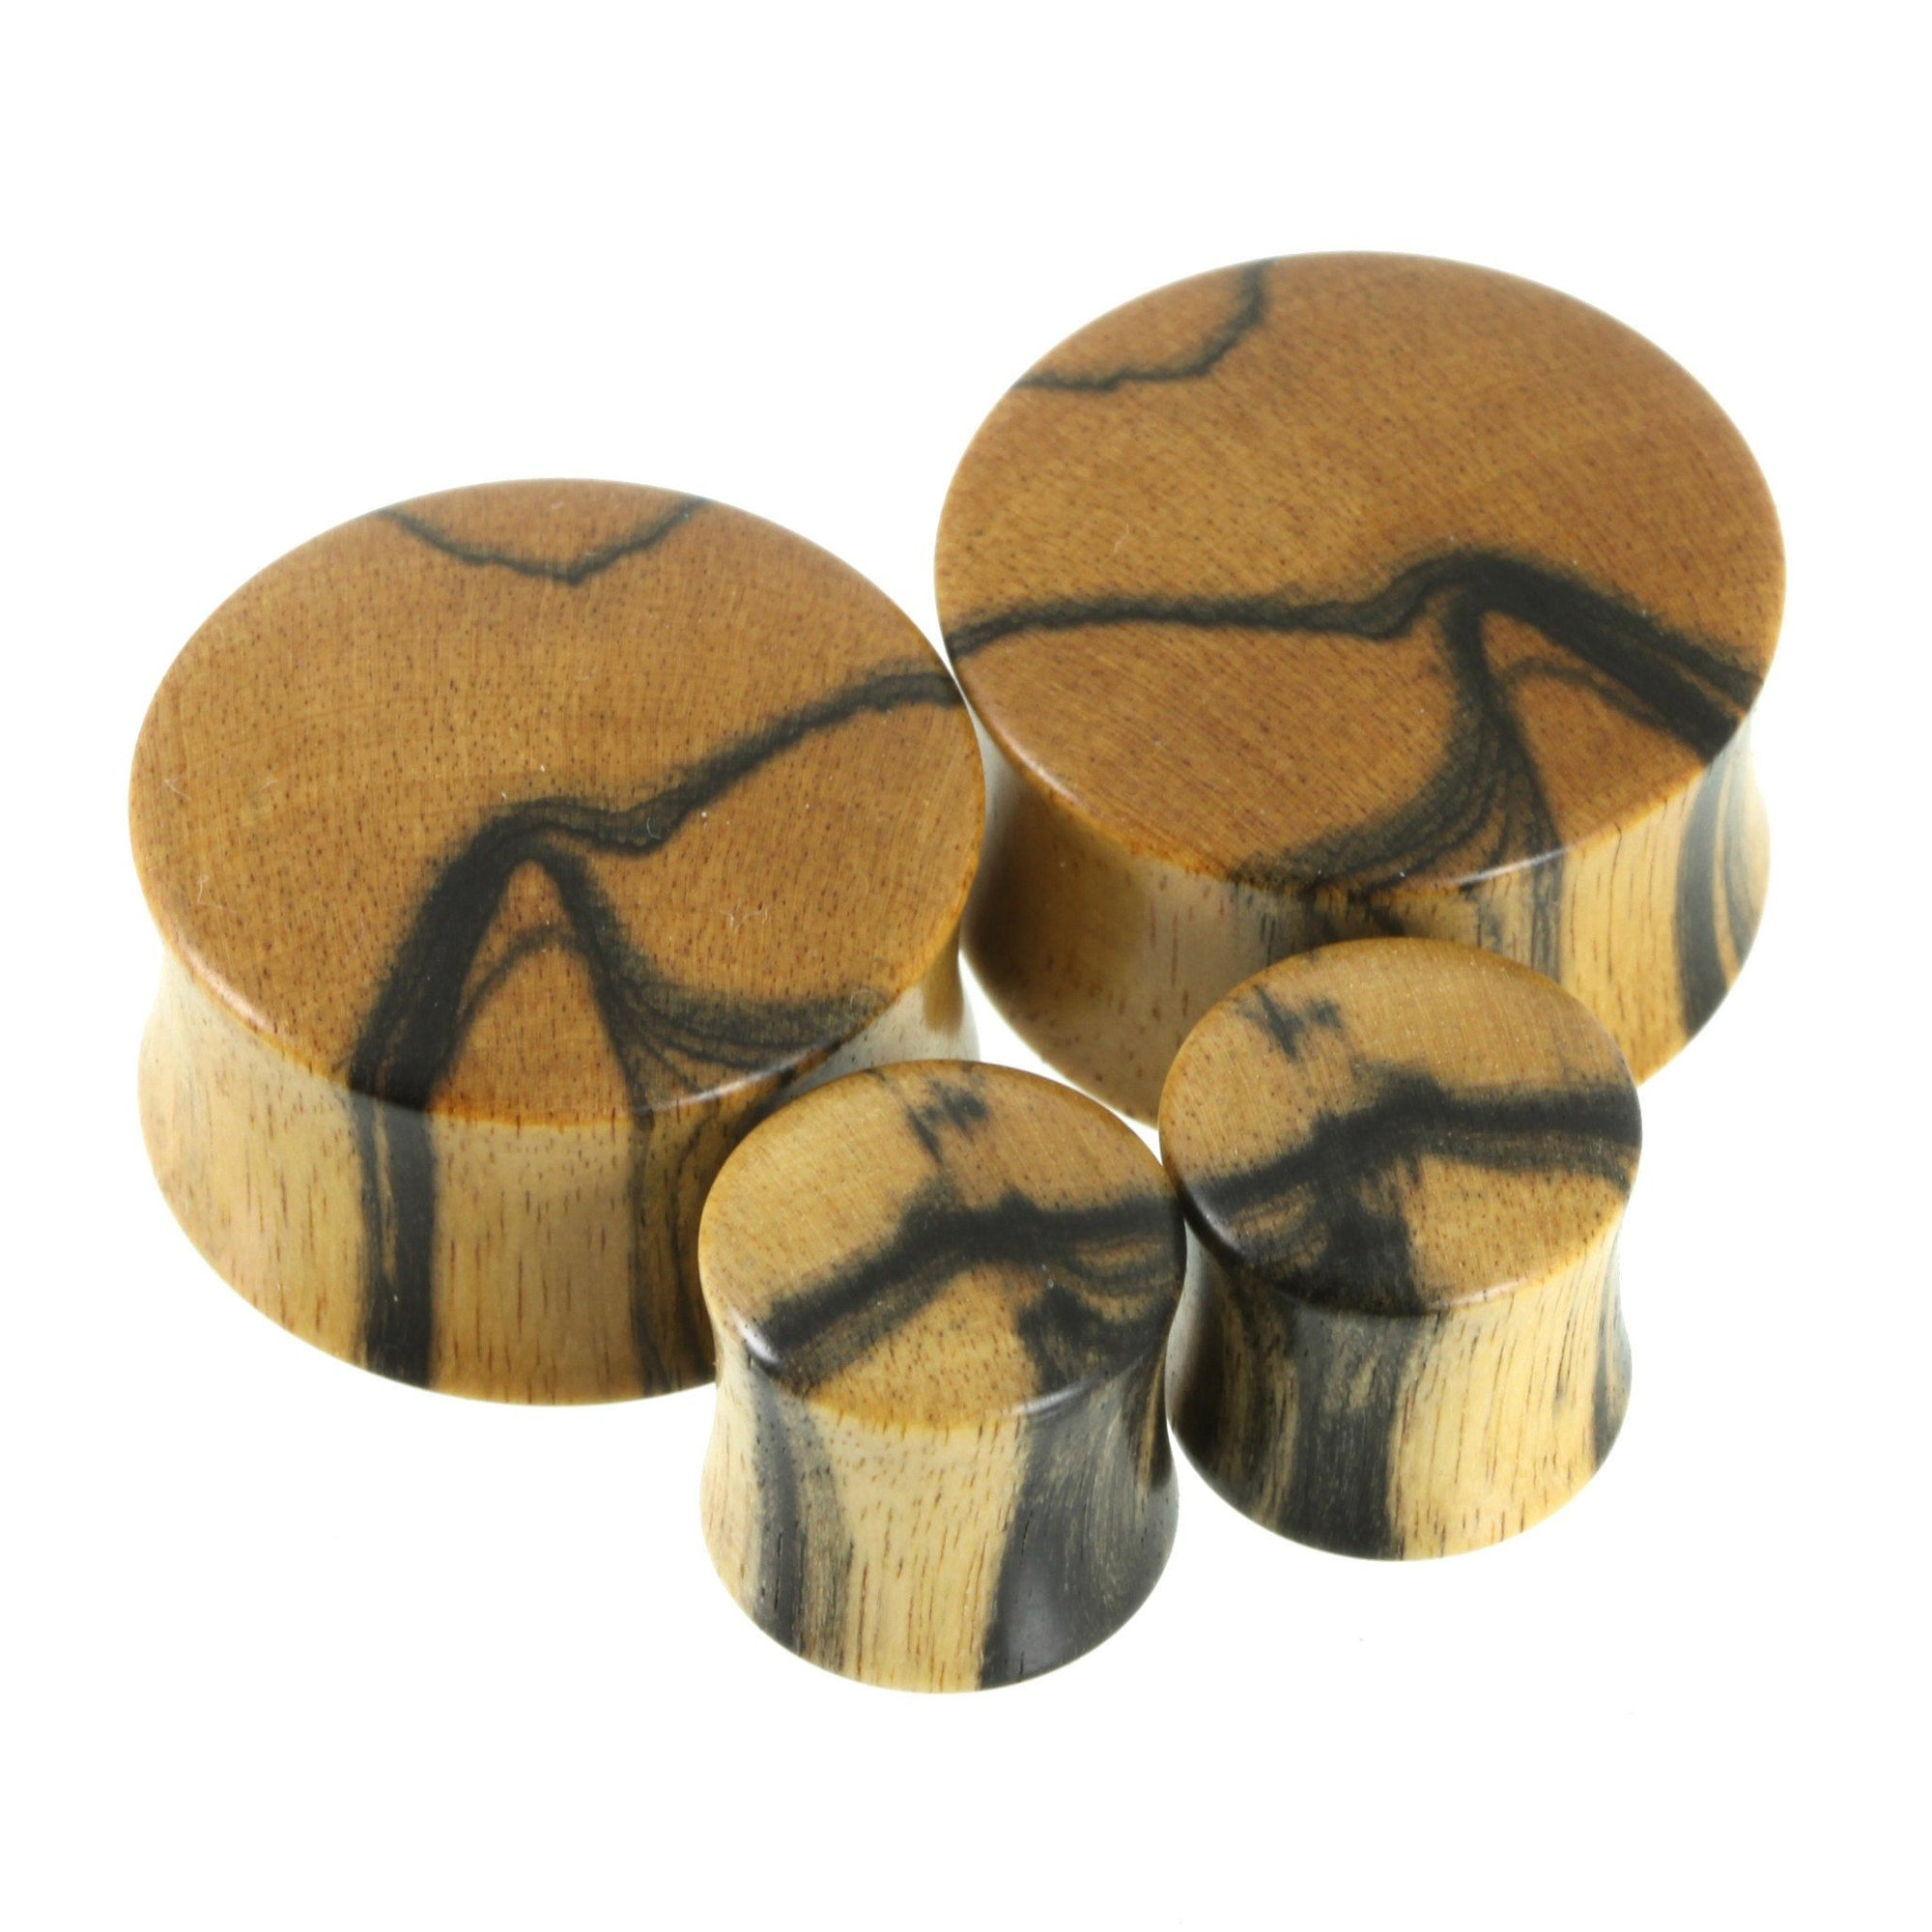 Black & White Ebony Plugs | Standard Grade, jewellery, body jewellery. - Southshore Adornments